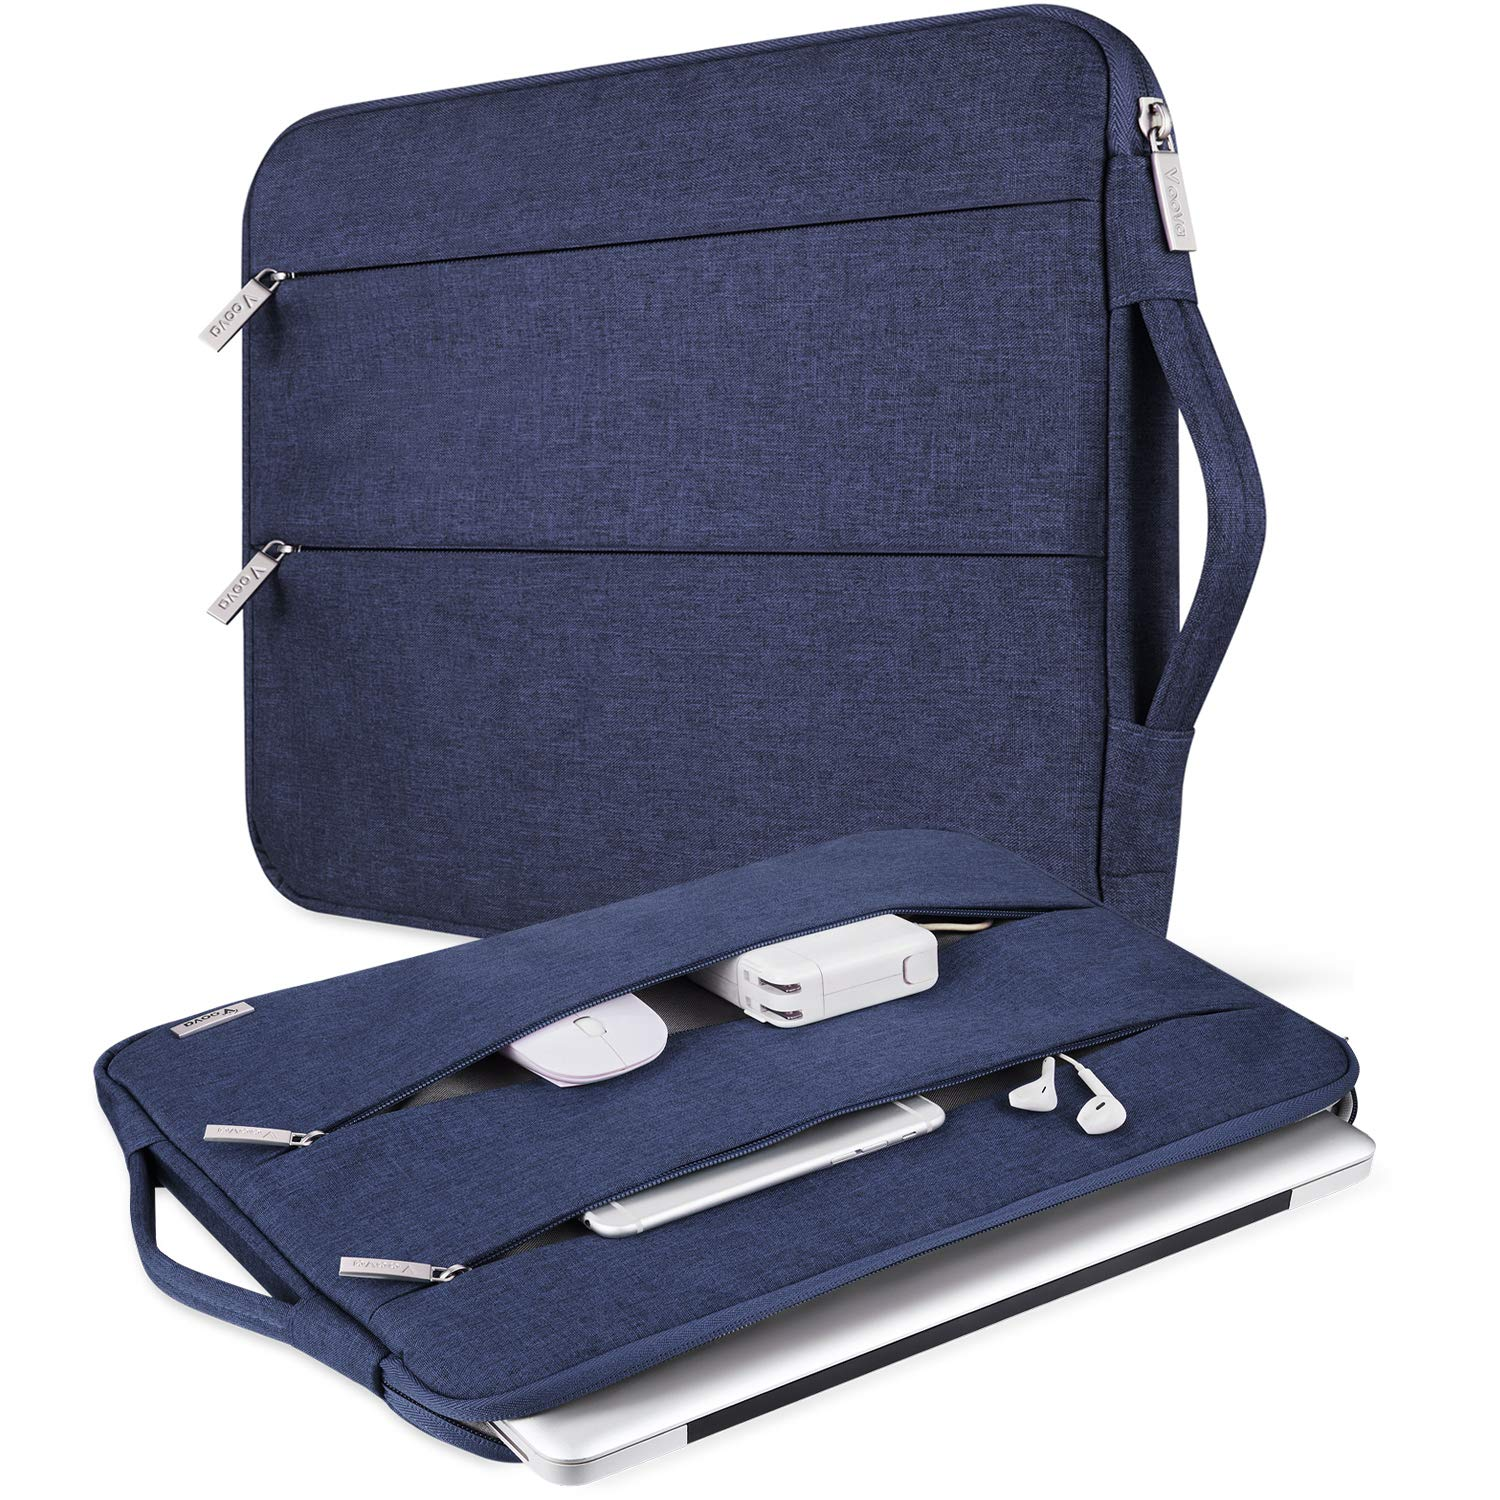 """V Voova Laptop Sleeve 13 13.3 Inch Waterproof Computer Carrying Case Compatible with Handle Compatible with Chromebook MacBook Air/13.3"""" MacBook Pro/Surface Book 2 13.5/HP Notebook Bags,Blue"""